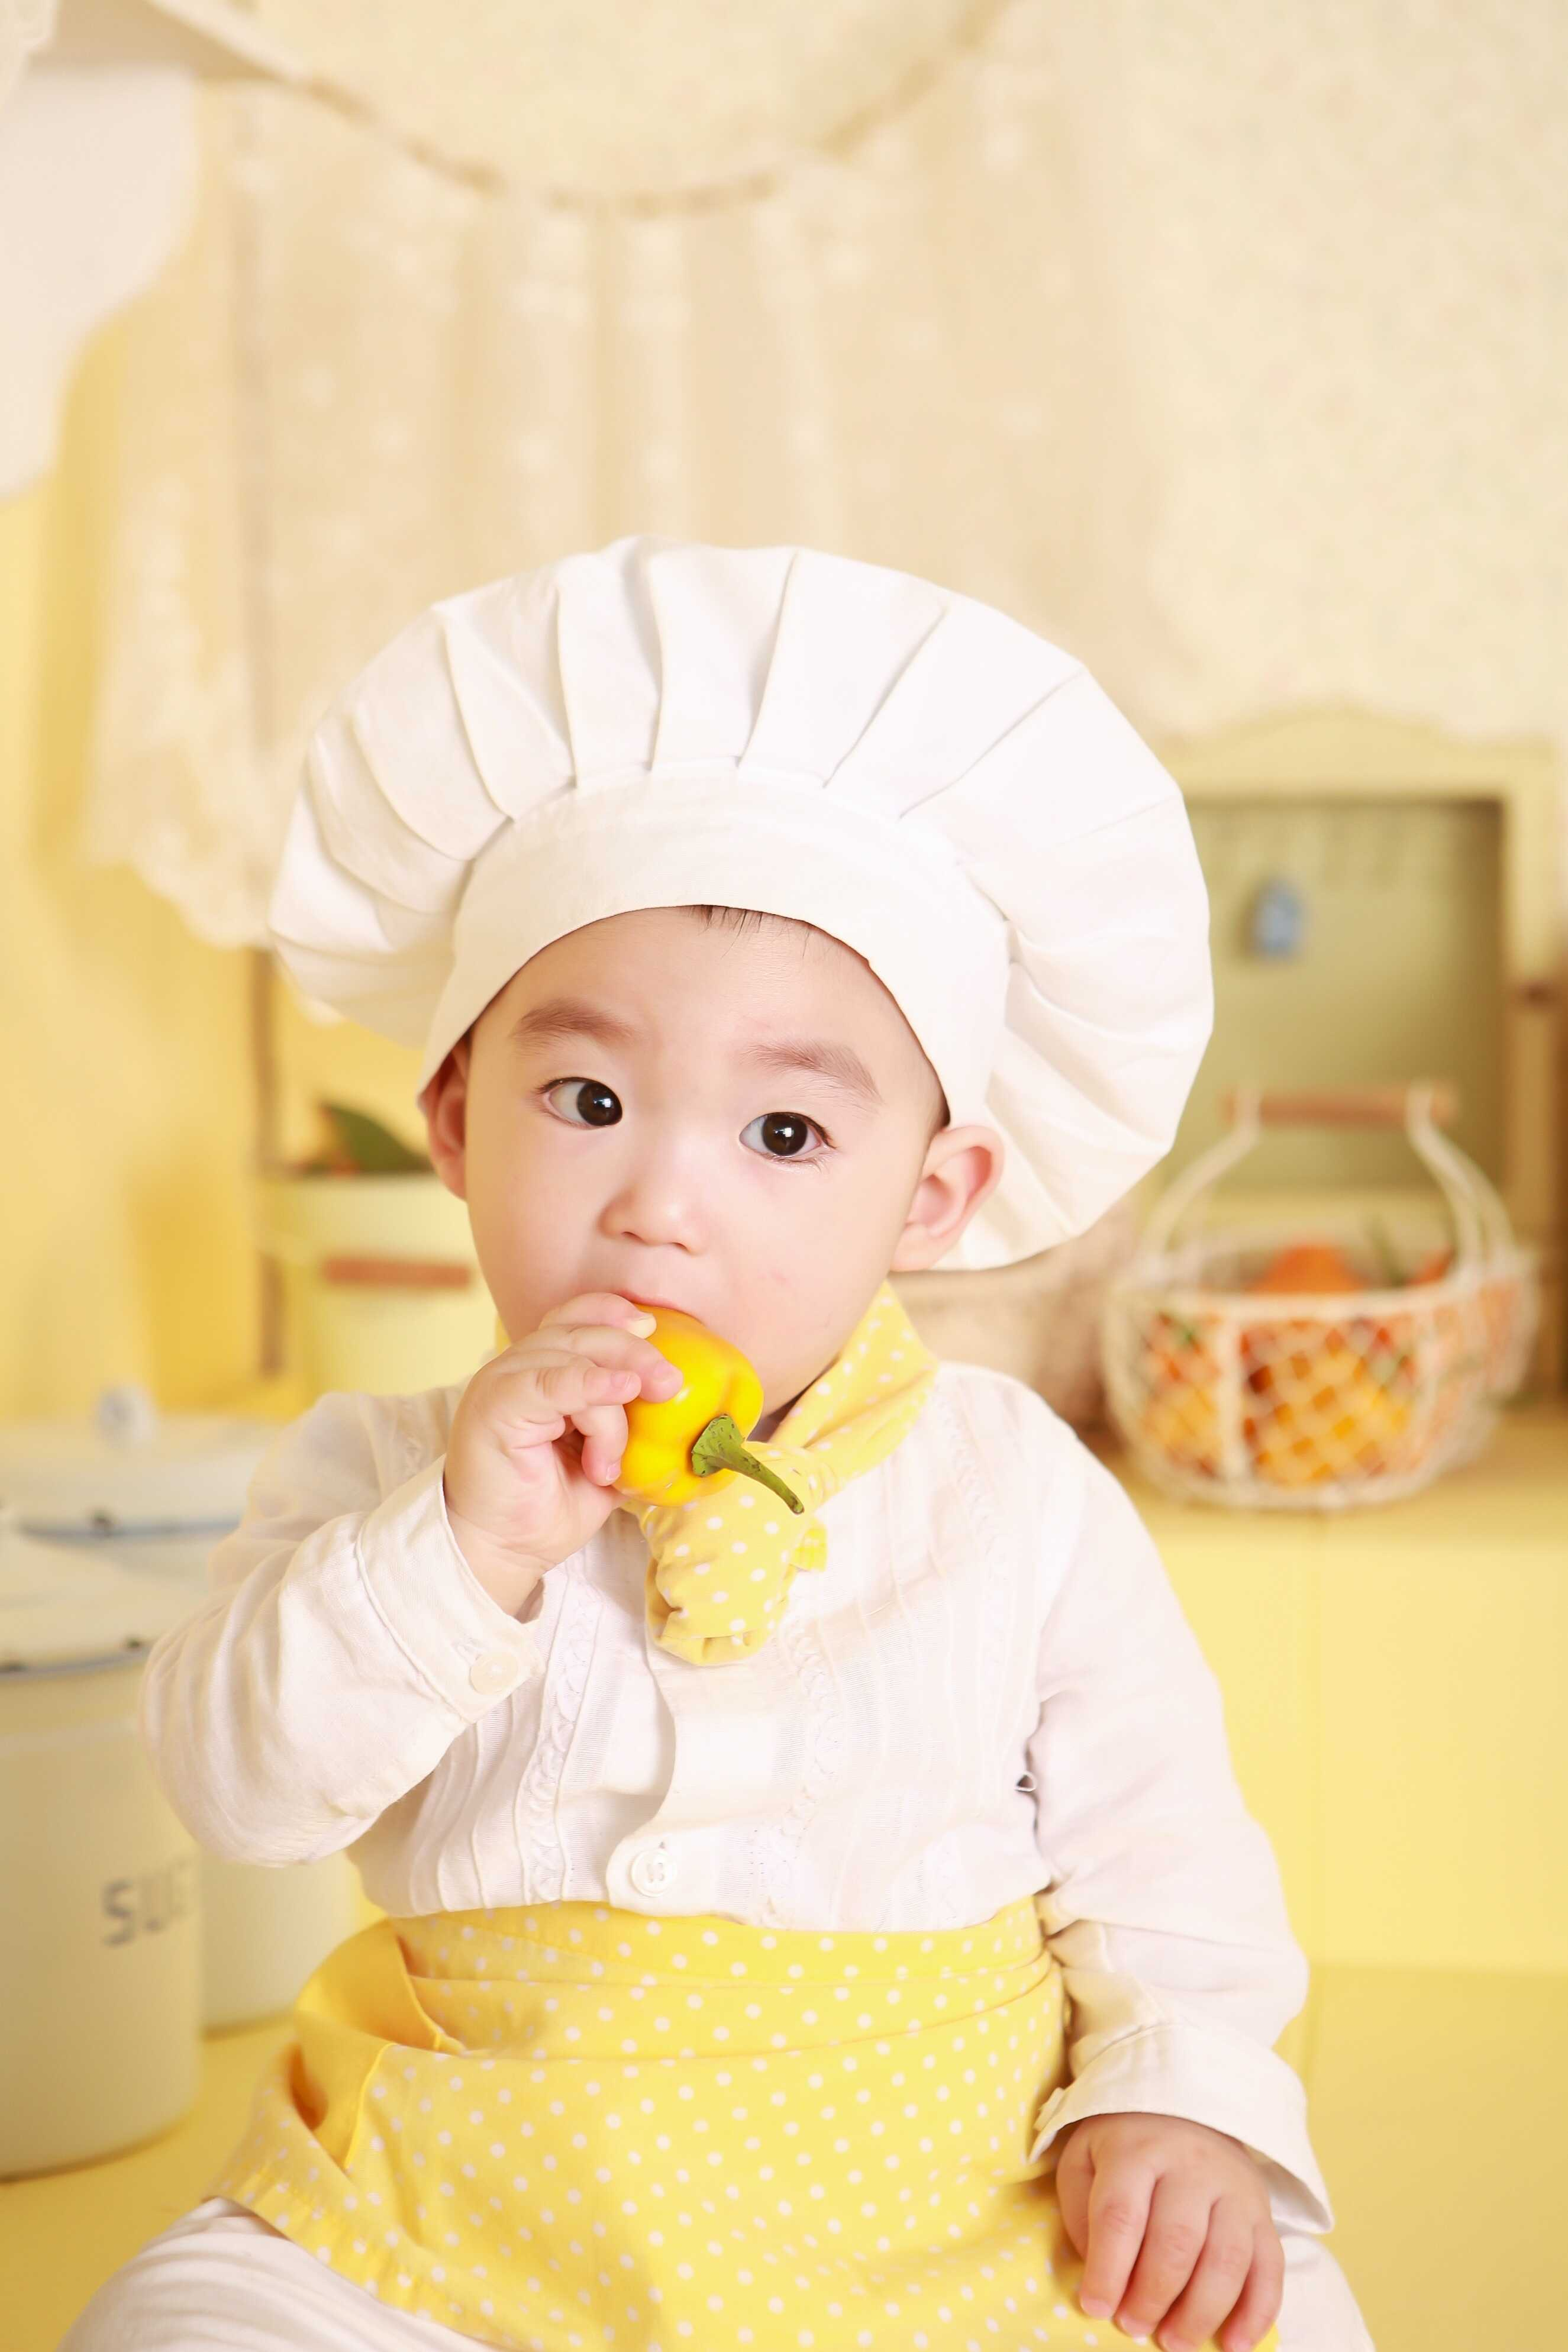 a baby with white outfit like a chef